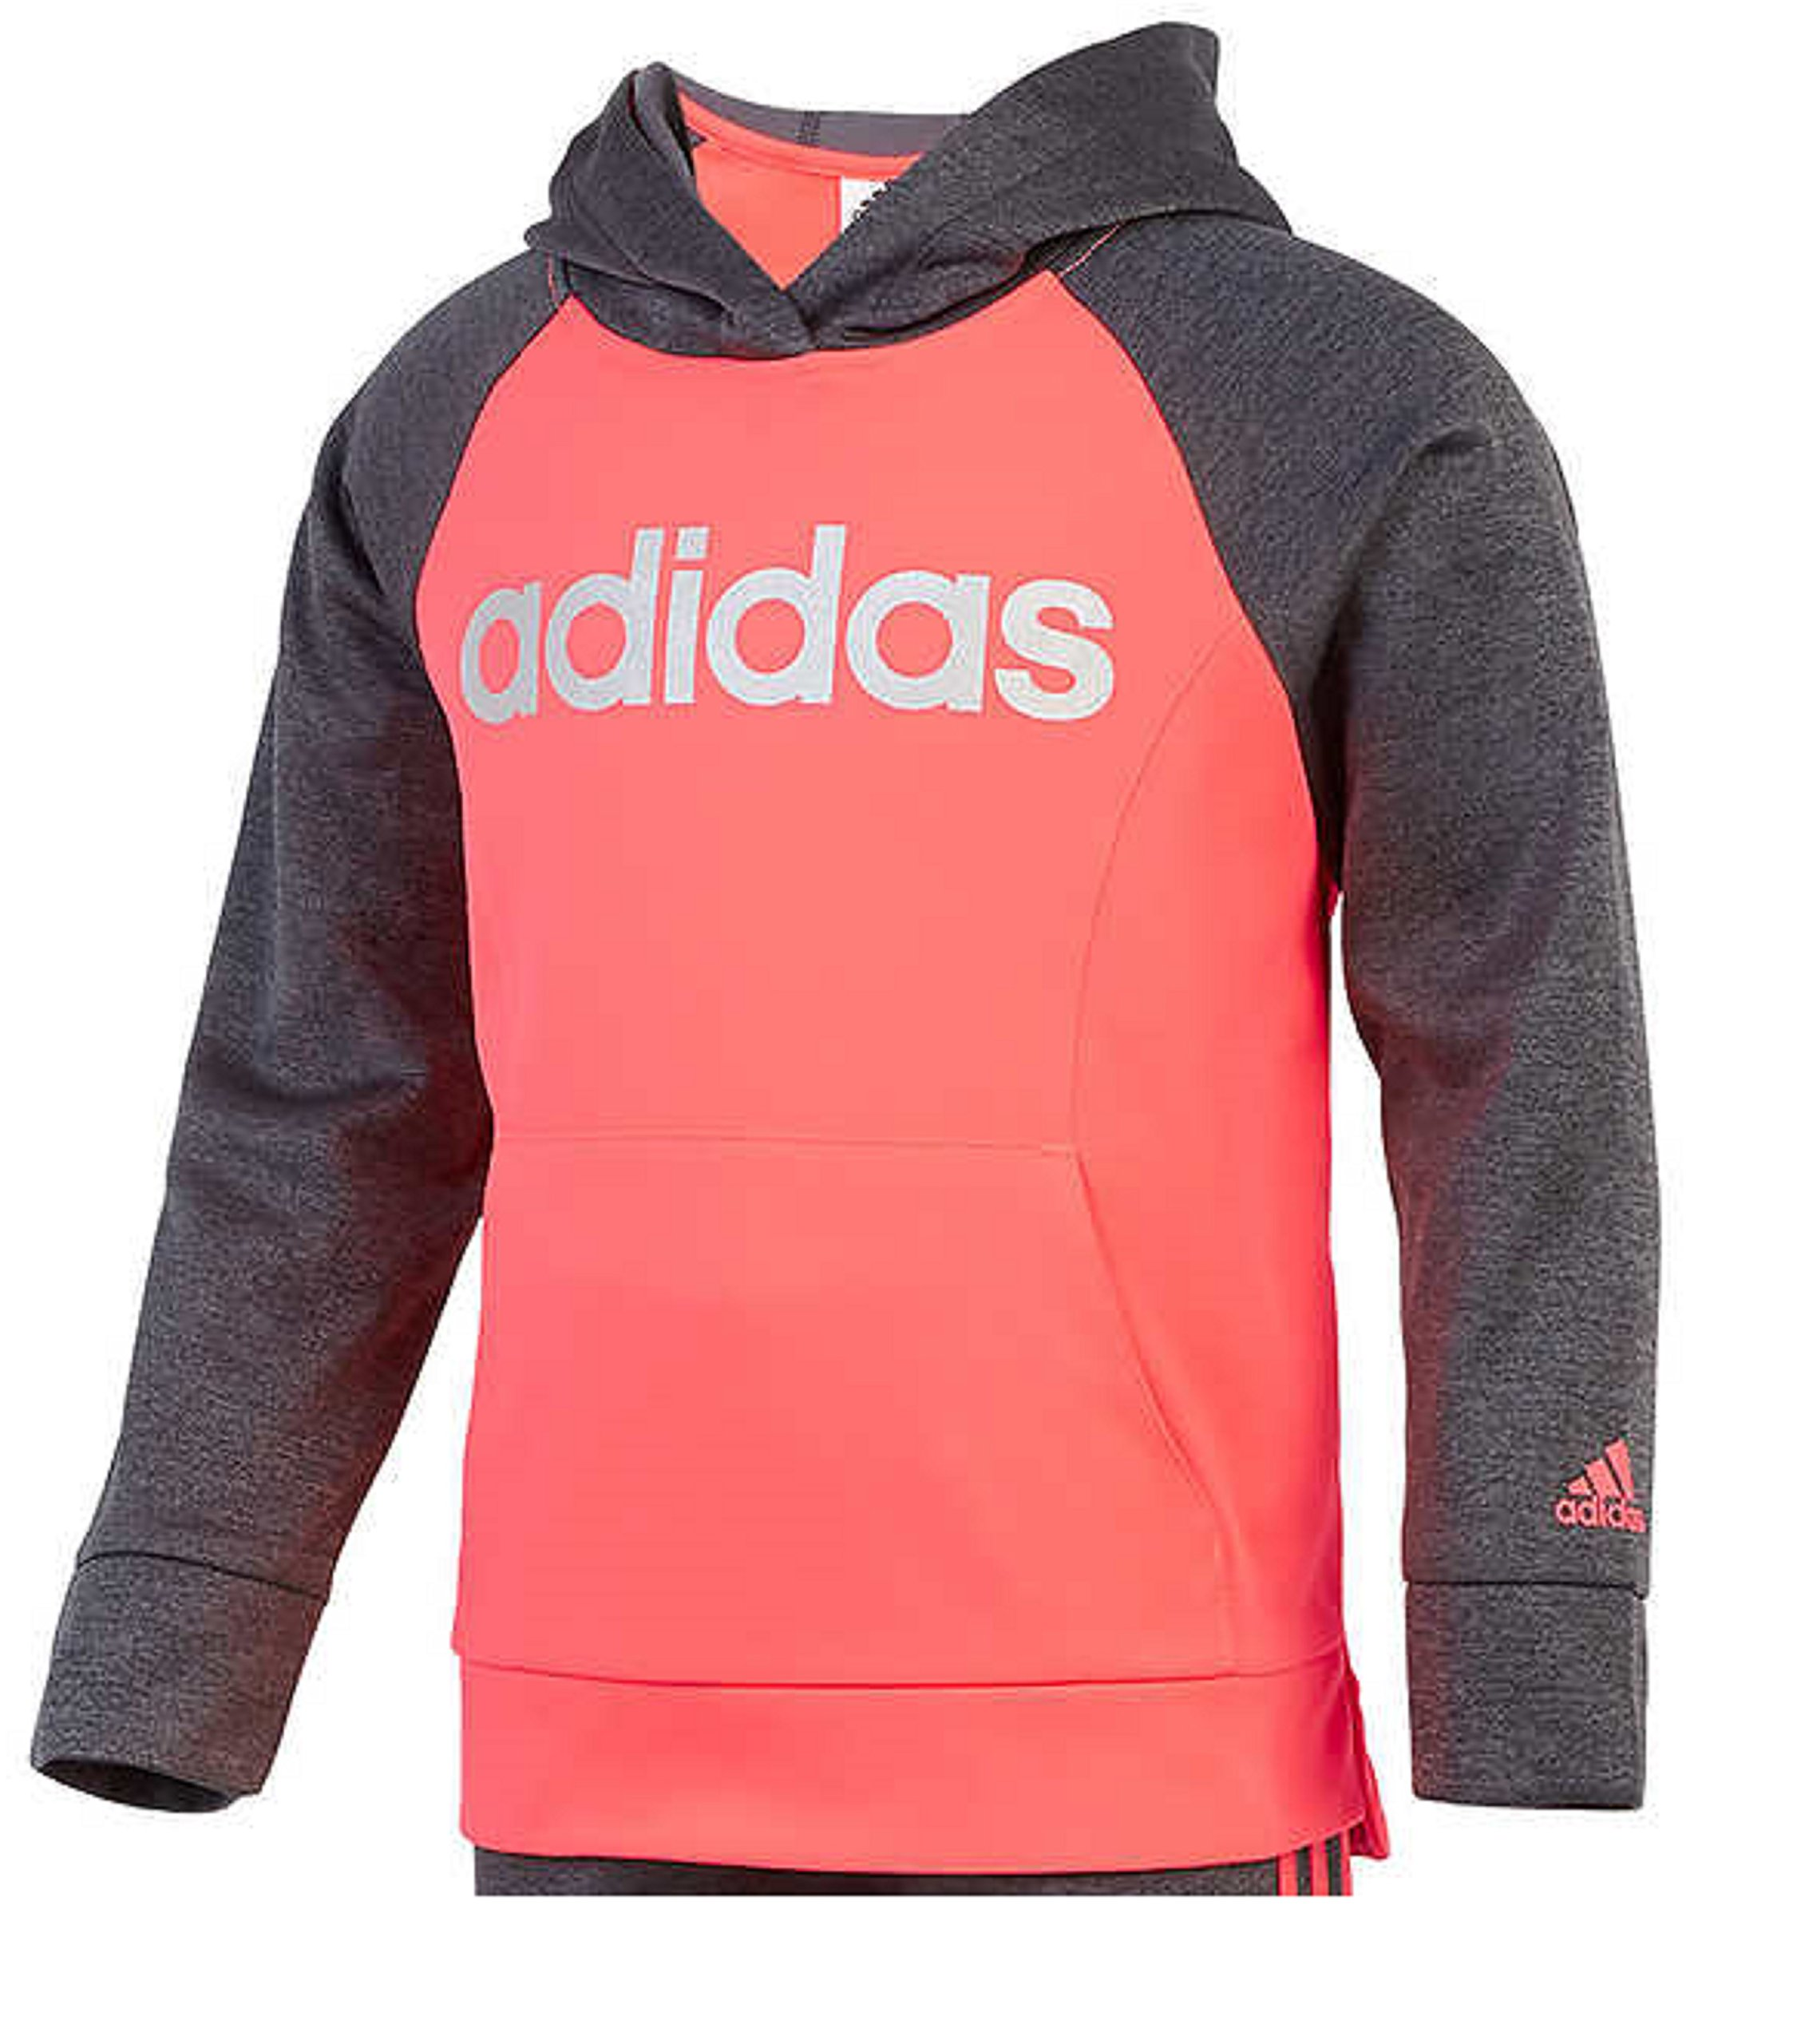 adidas Girls' Tricot Hoodie Jacket and Pant Set (4T, Heather Gray/Neon Pink) by adidas (Image #3)